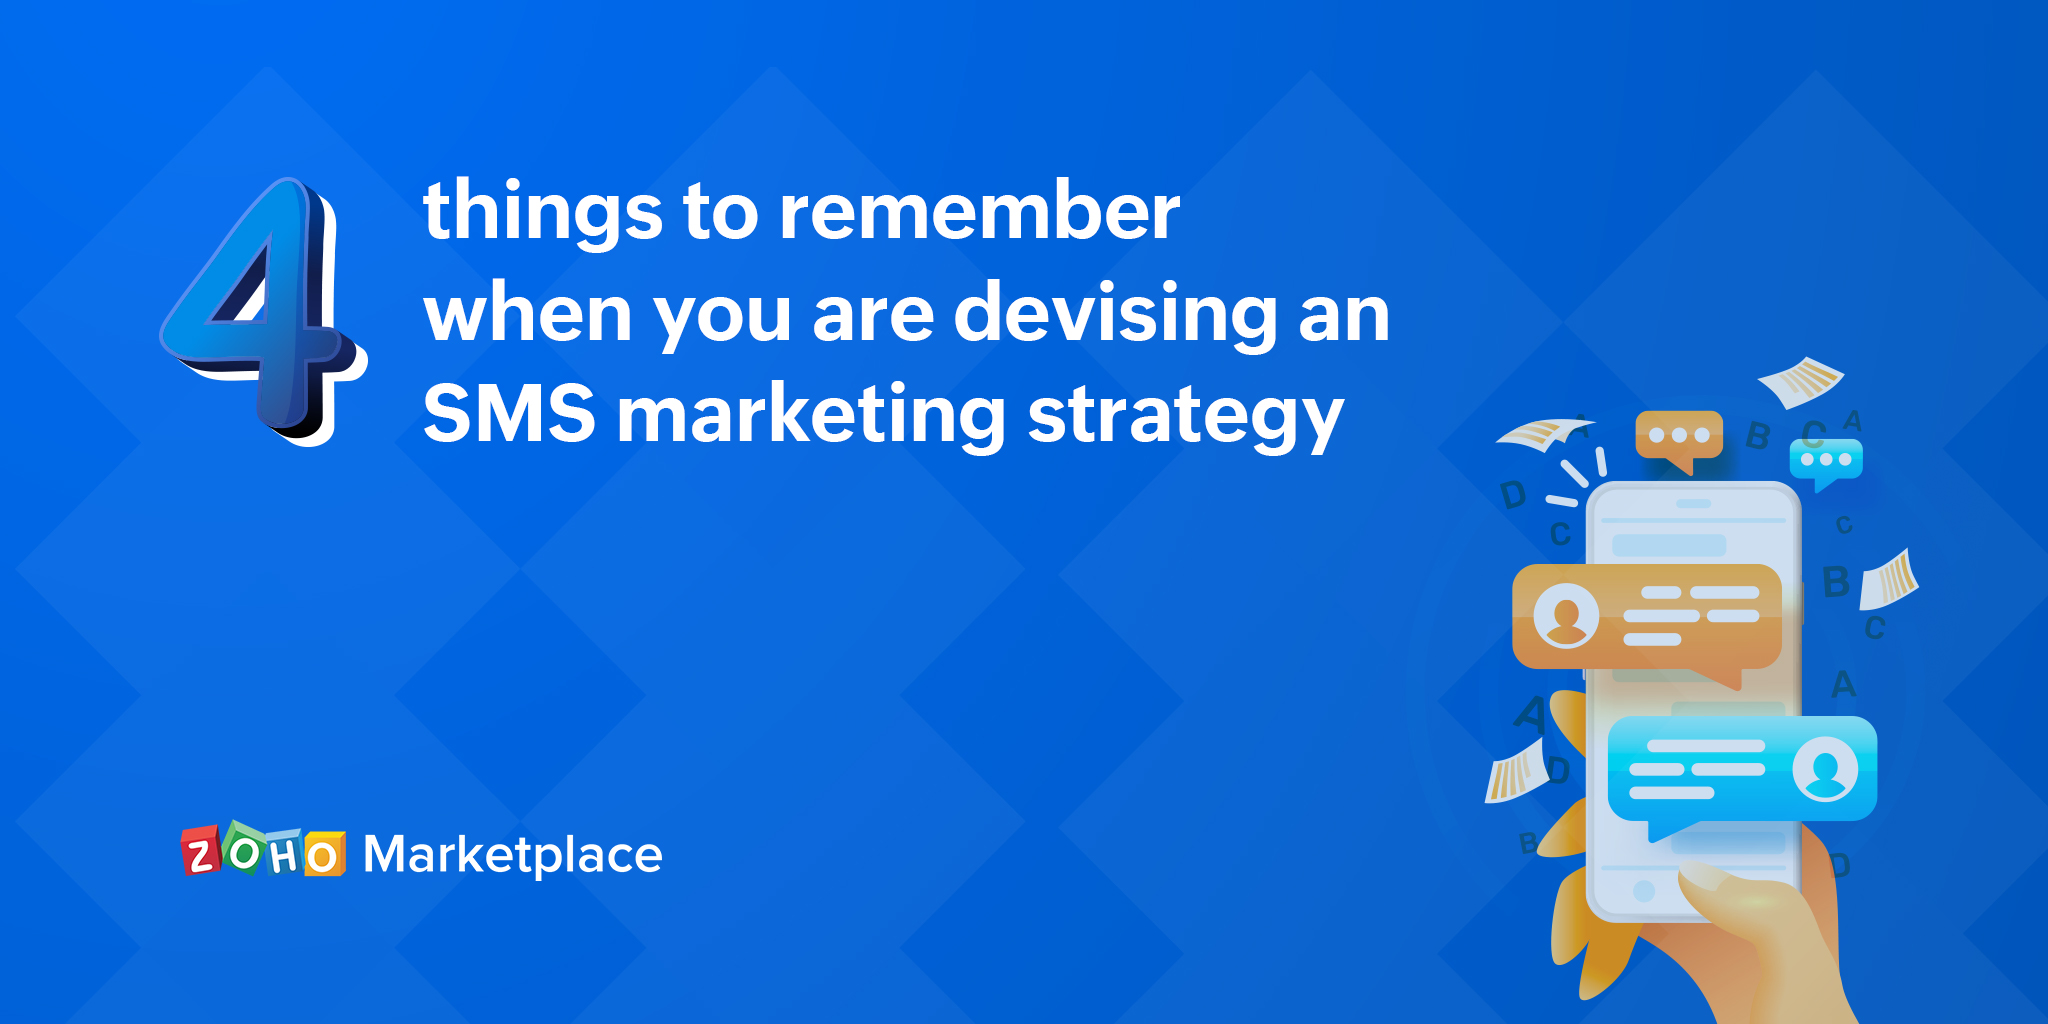 ProTips: 4 things to remember when you are devising an SMS marketing strategy